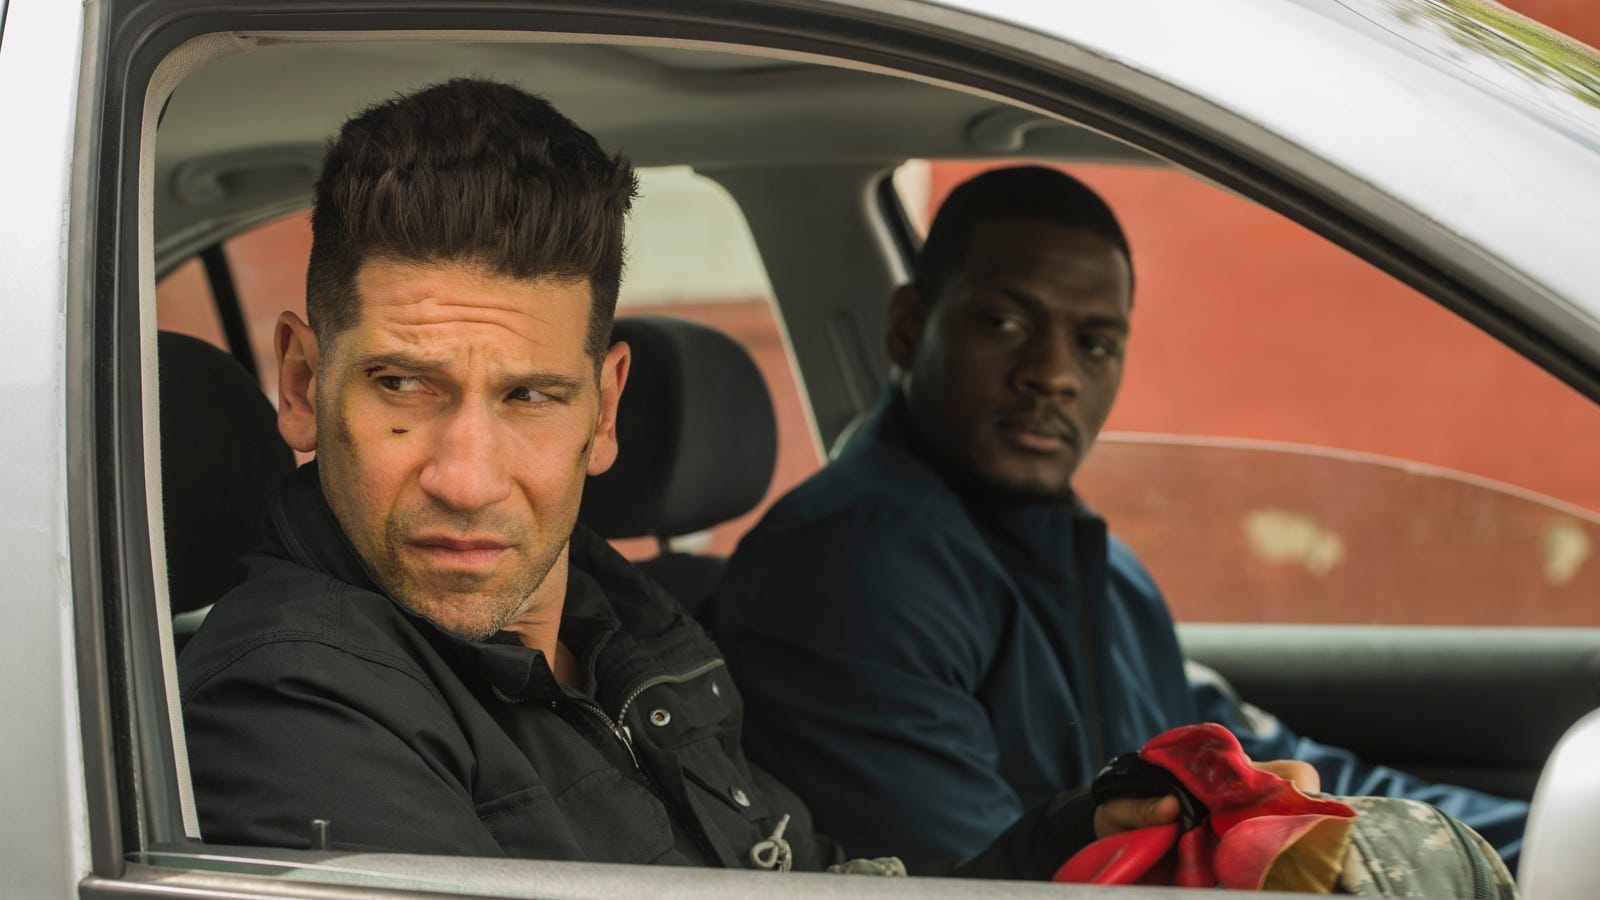 Even The Punisher can't escape the season 2 curse of Marvel Netflix shows